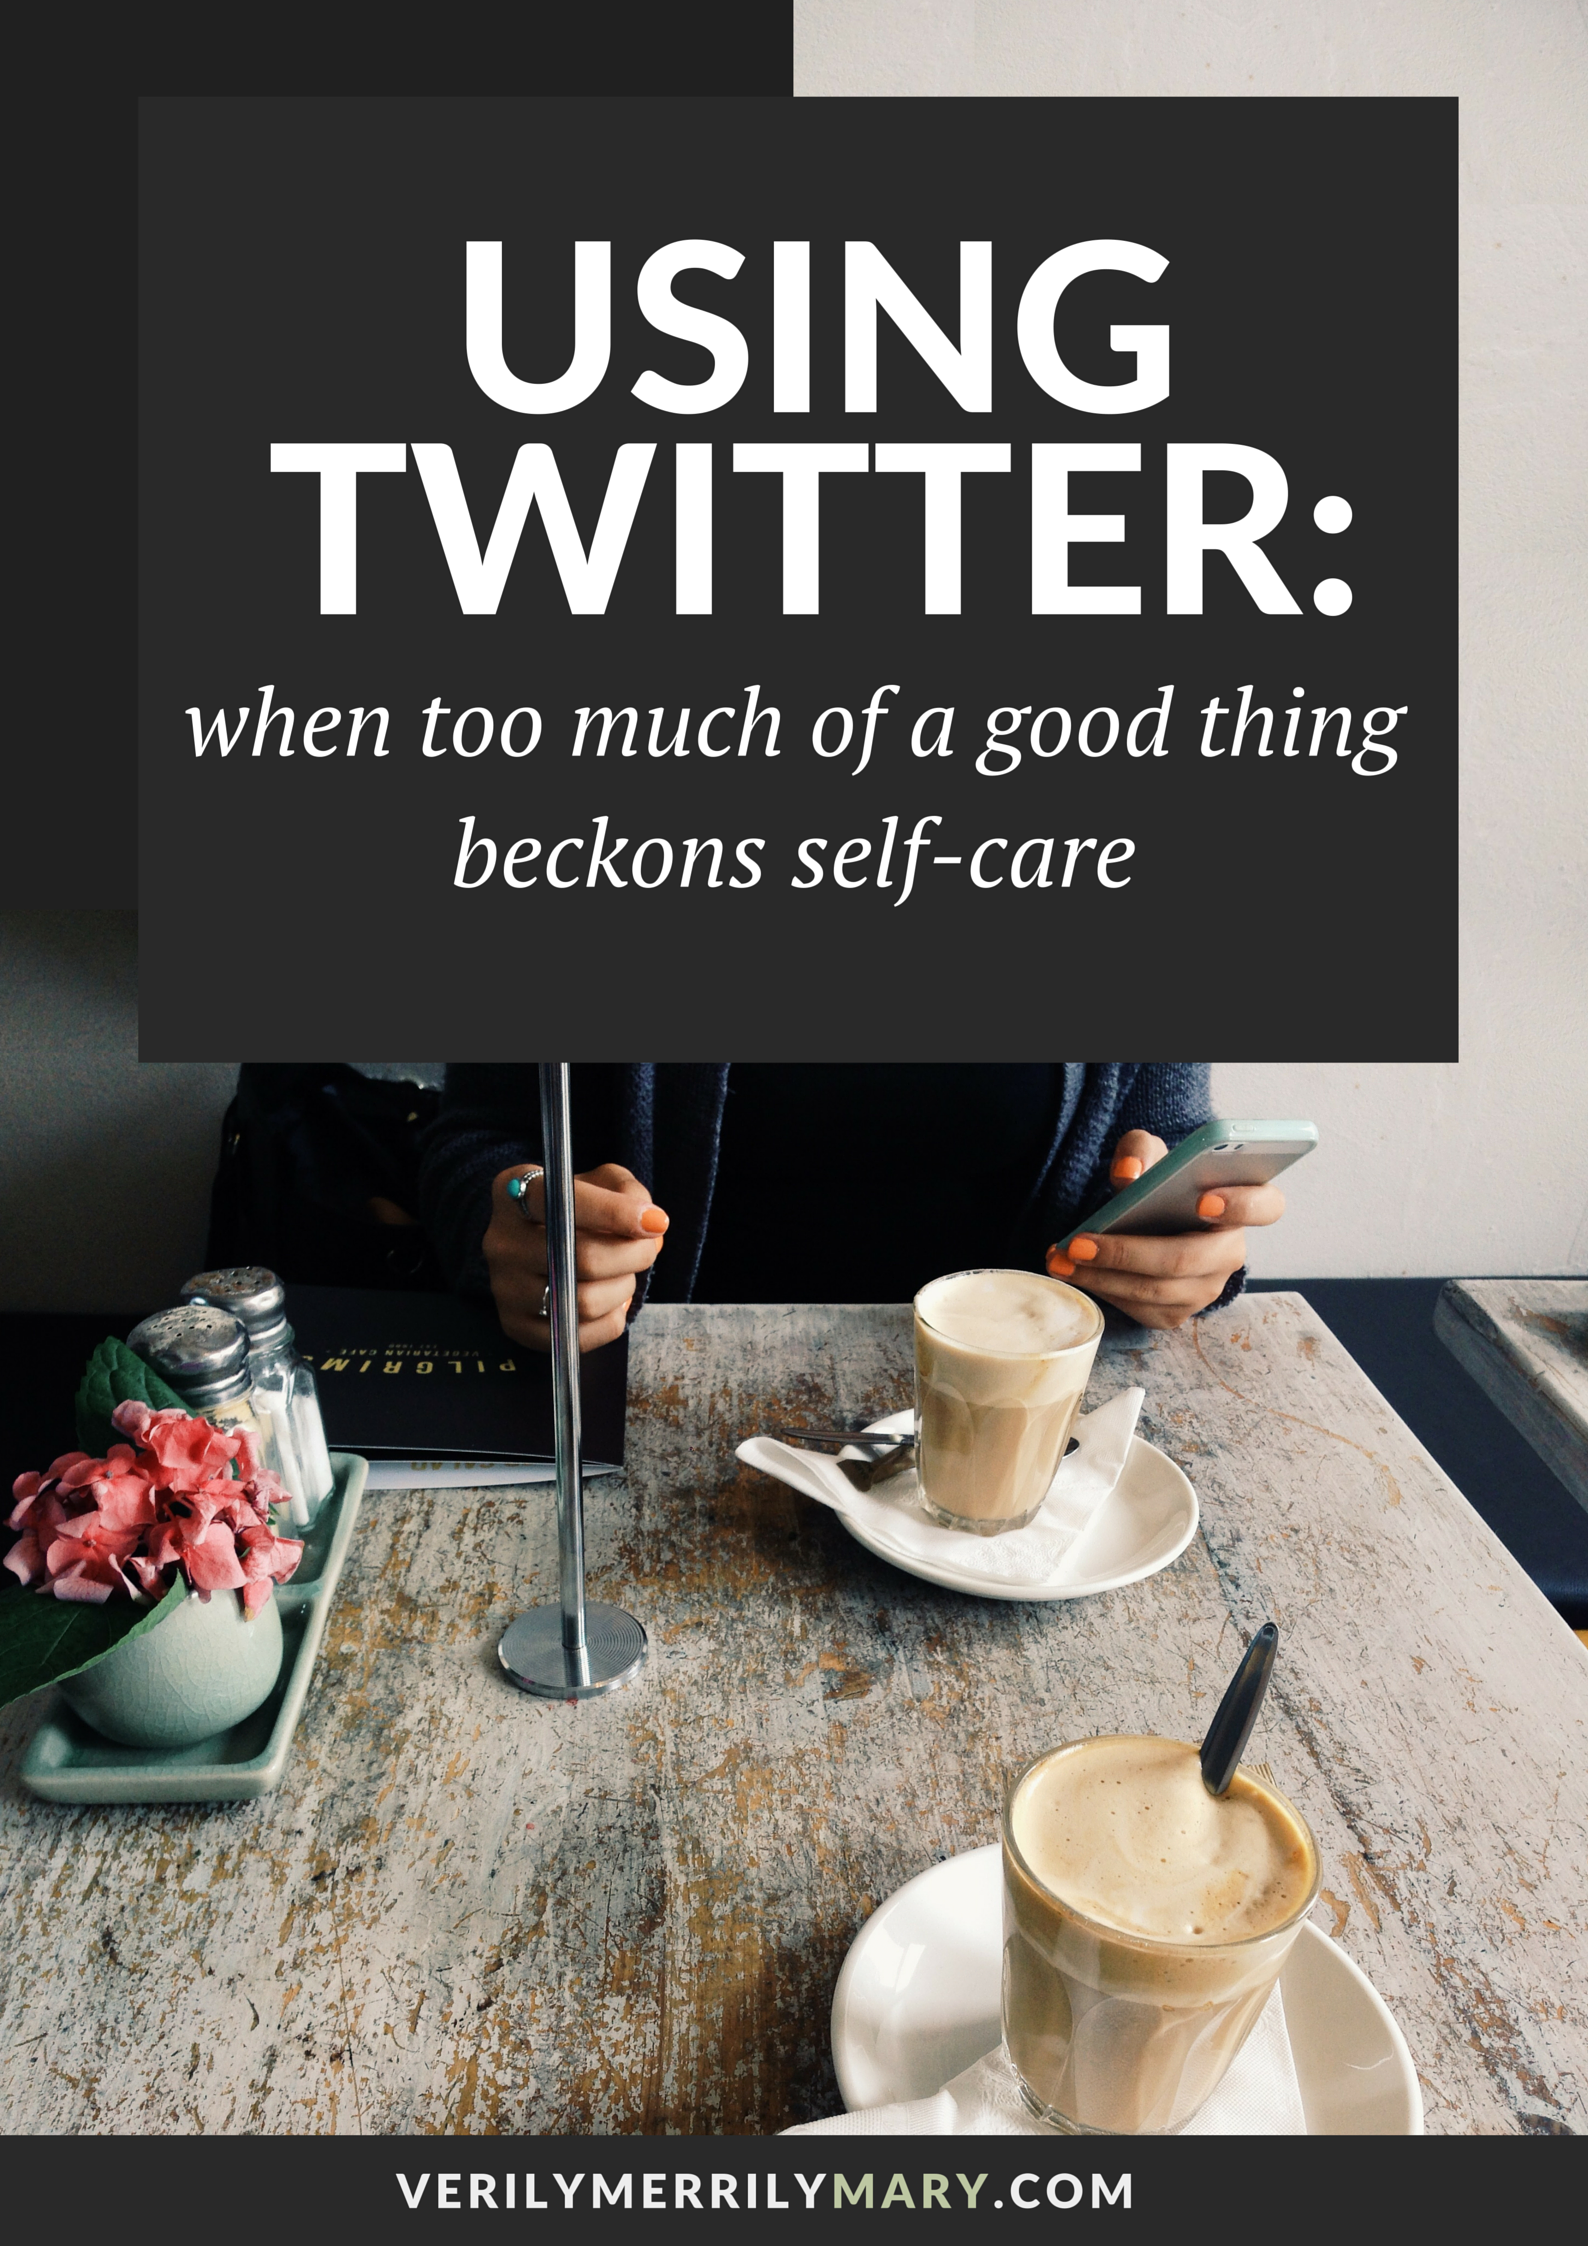 Twitter is an awesome kind of social media. But there are times when it can be overwhelming. Click through to read the importance of self-care when using this and other forms of social media.